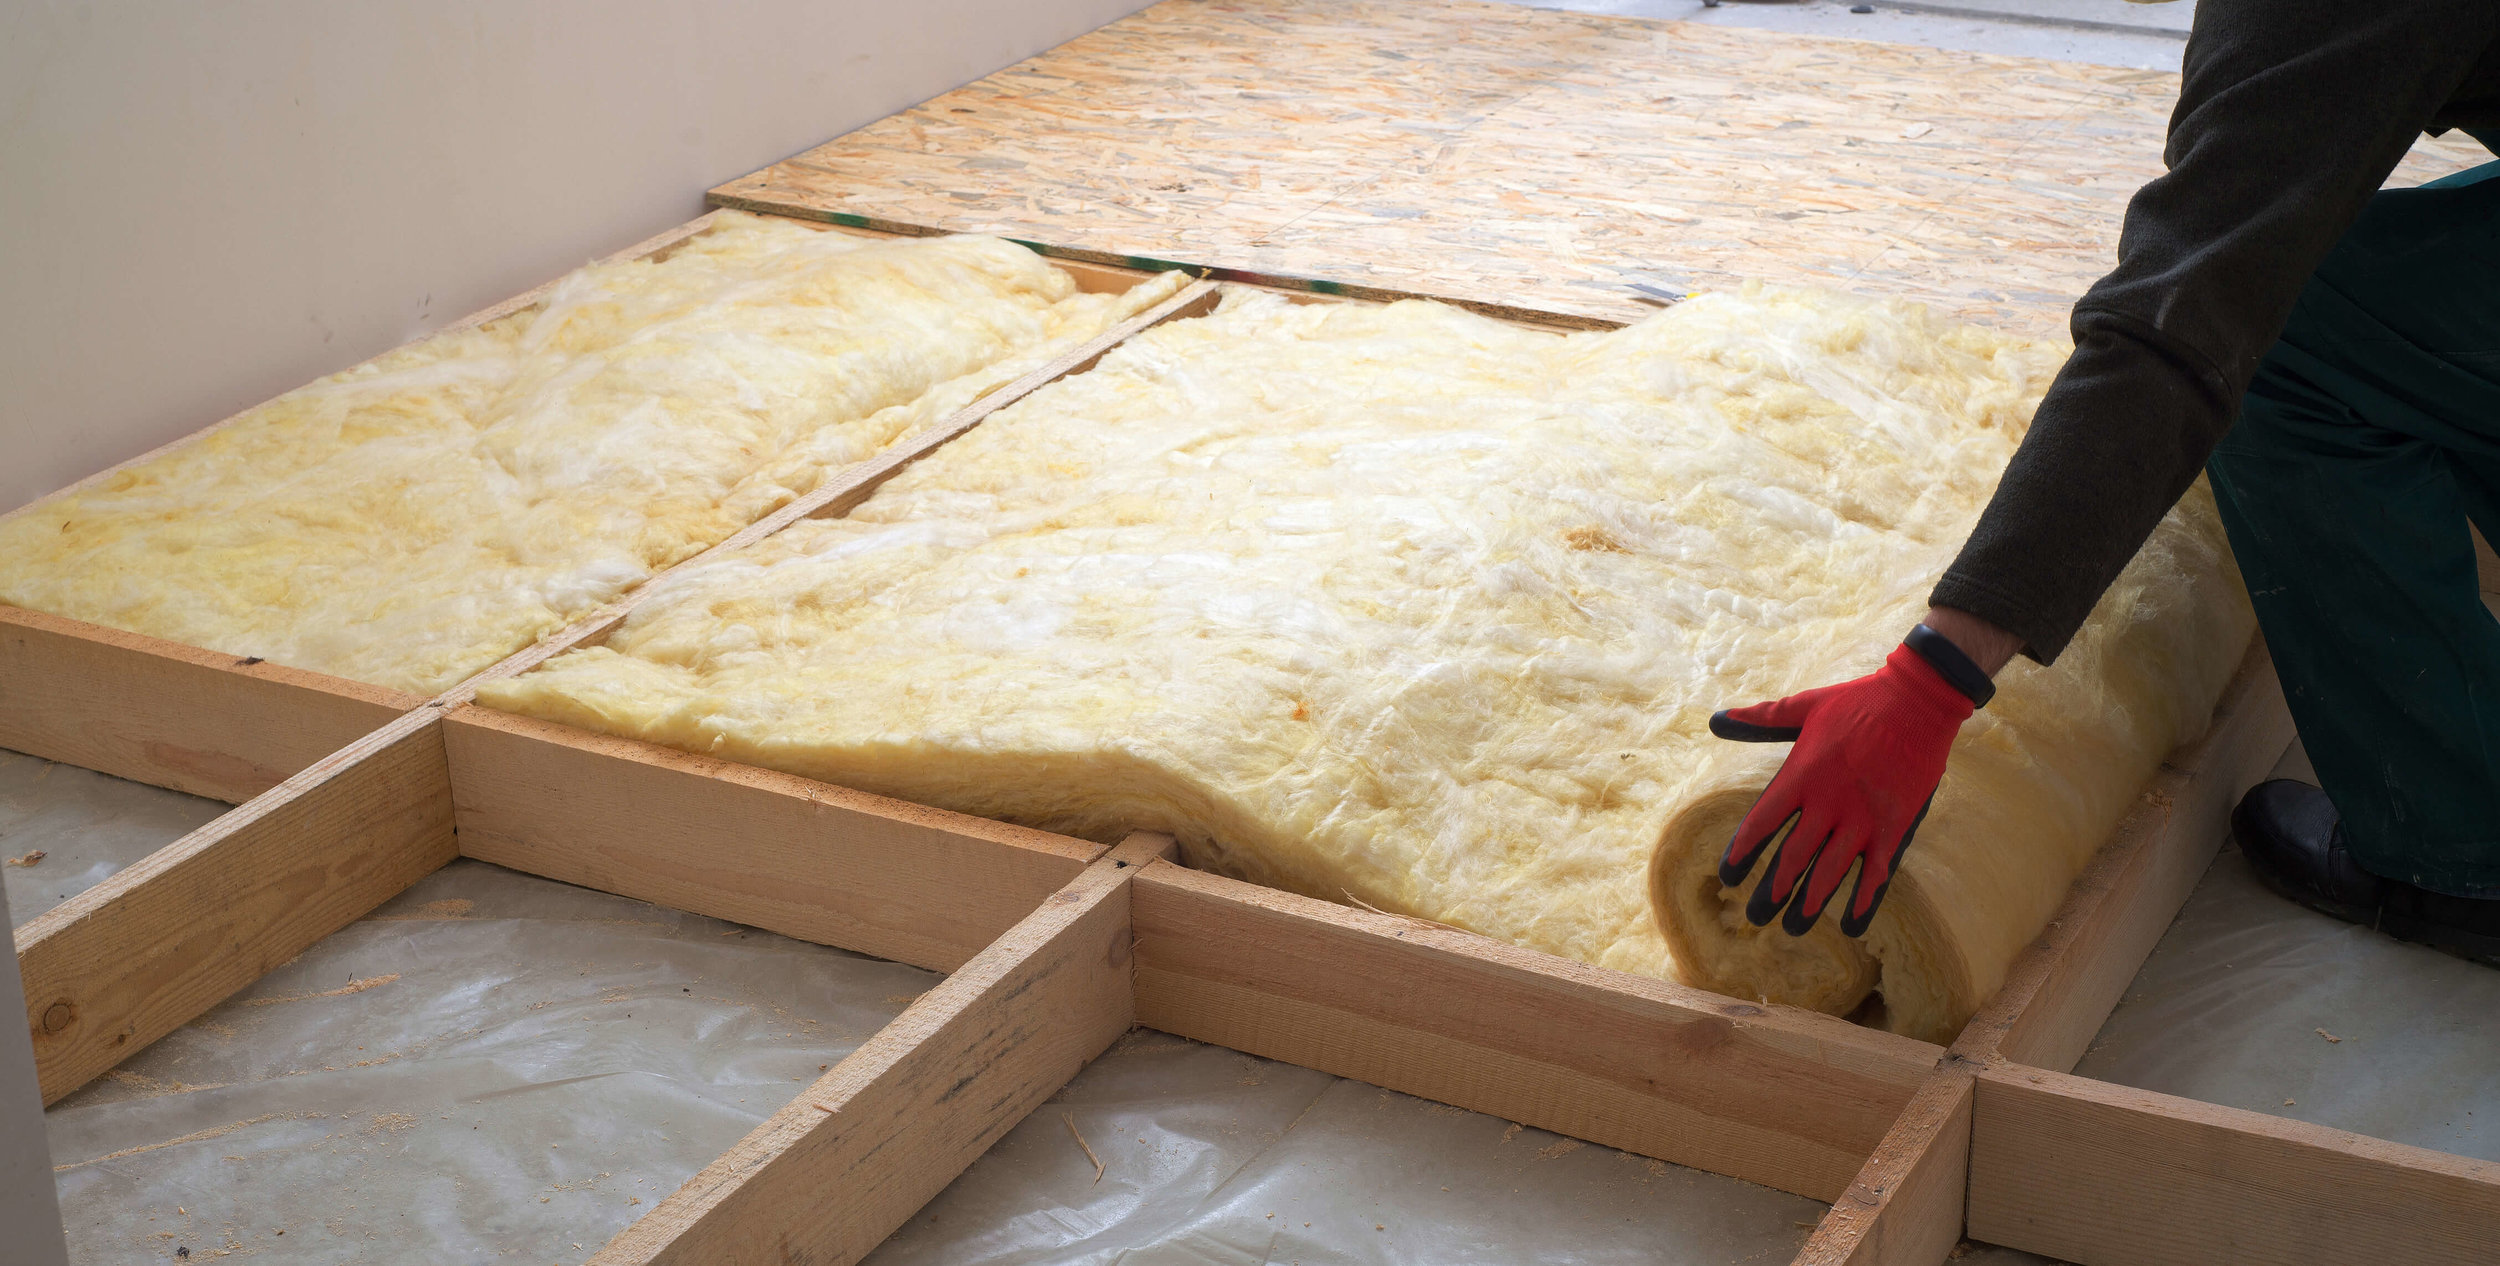 Insulation is a great way to make your home more energy efficient, especially during the cold winter months.